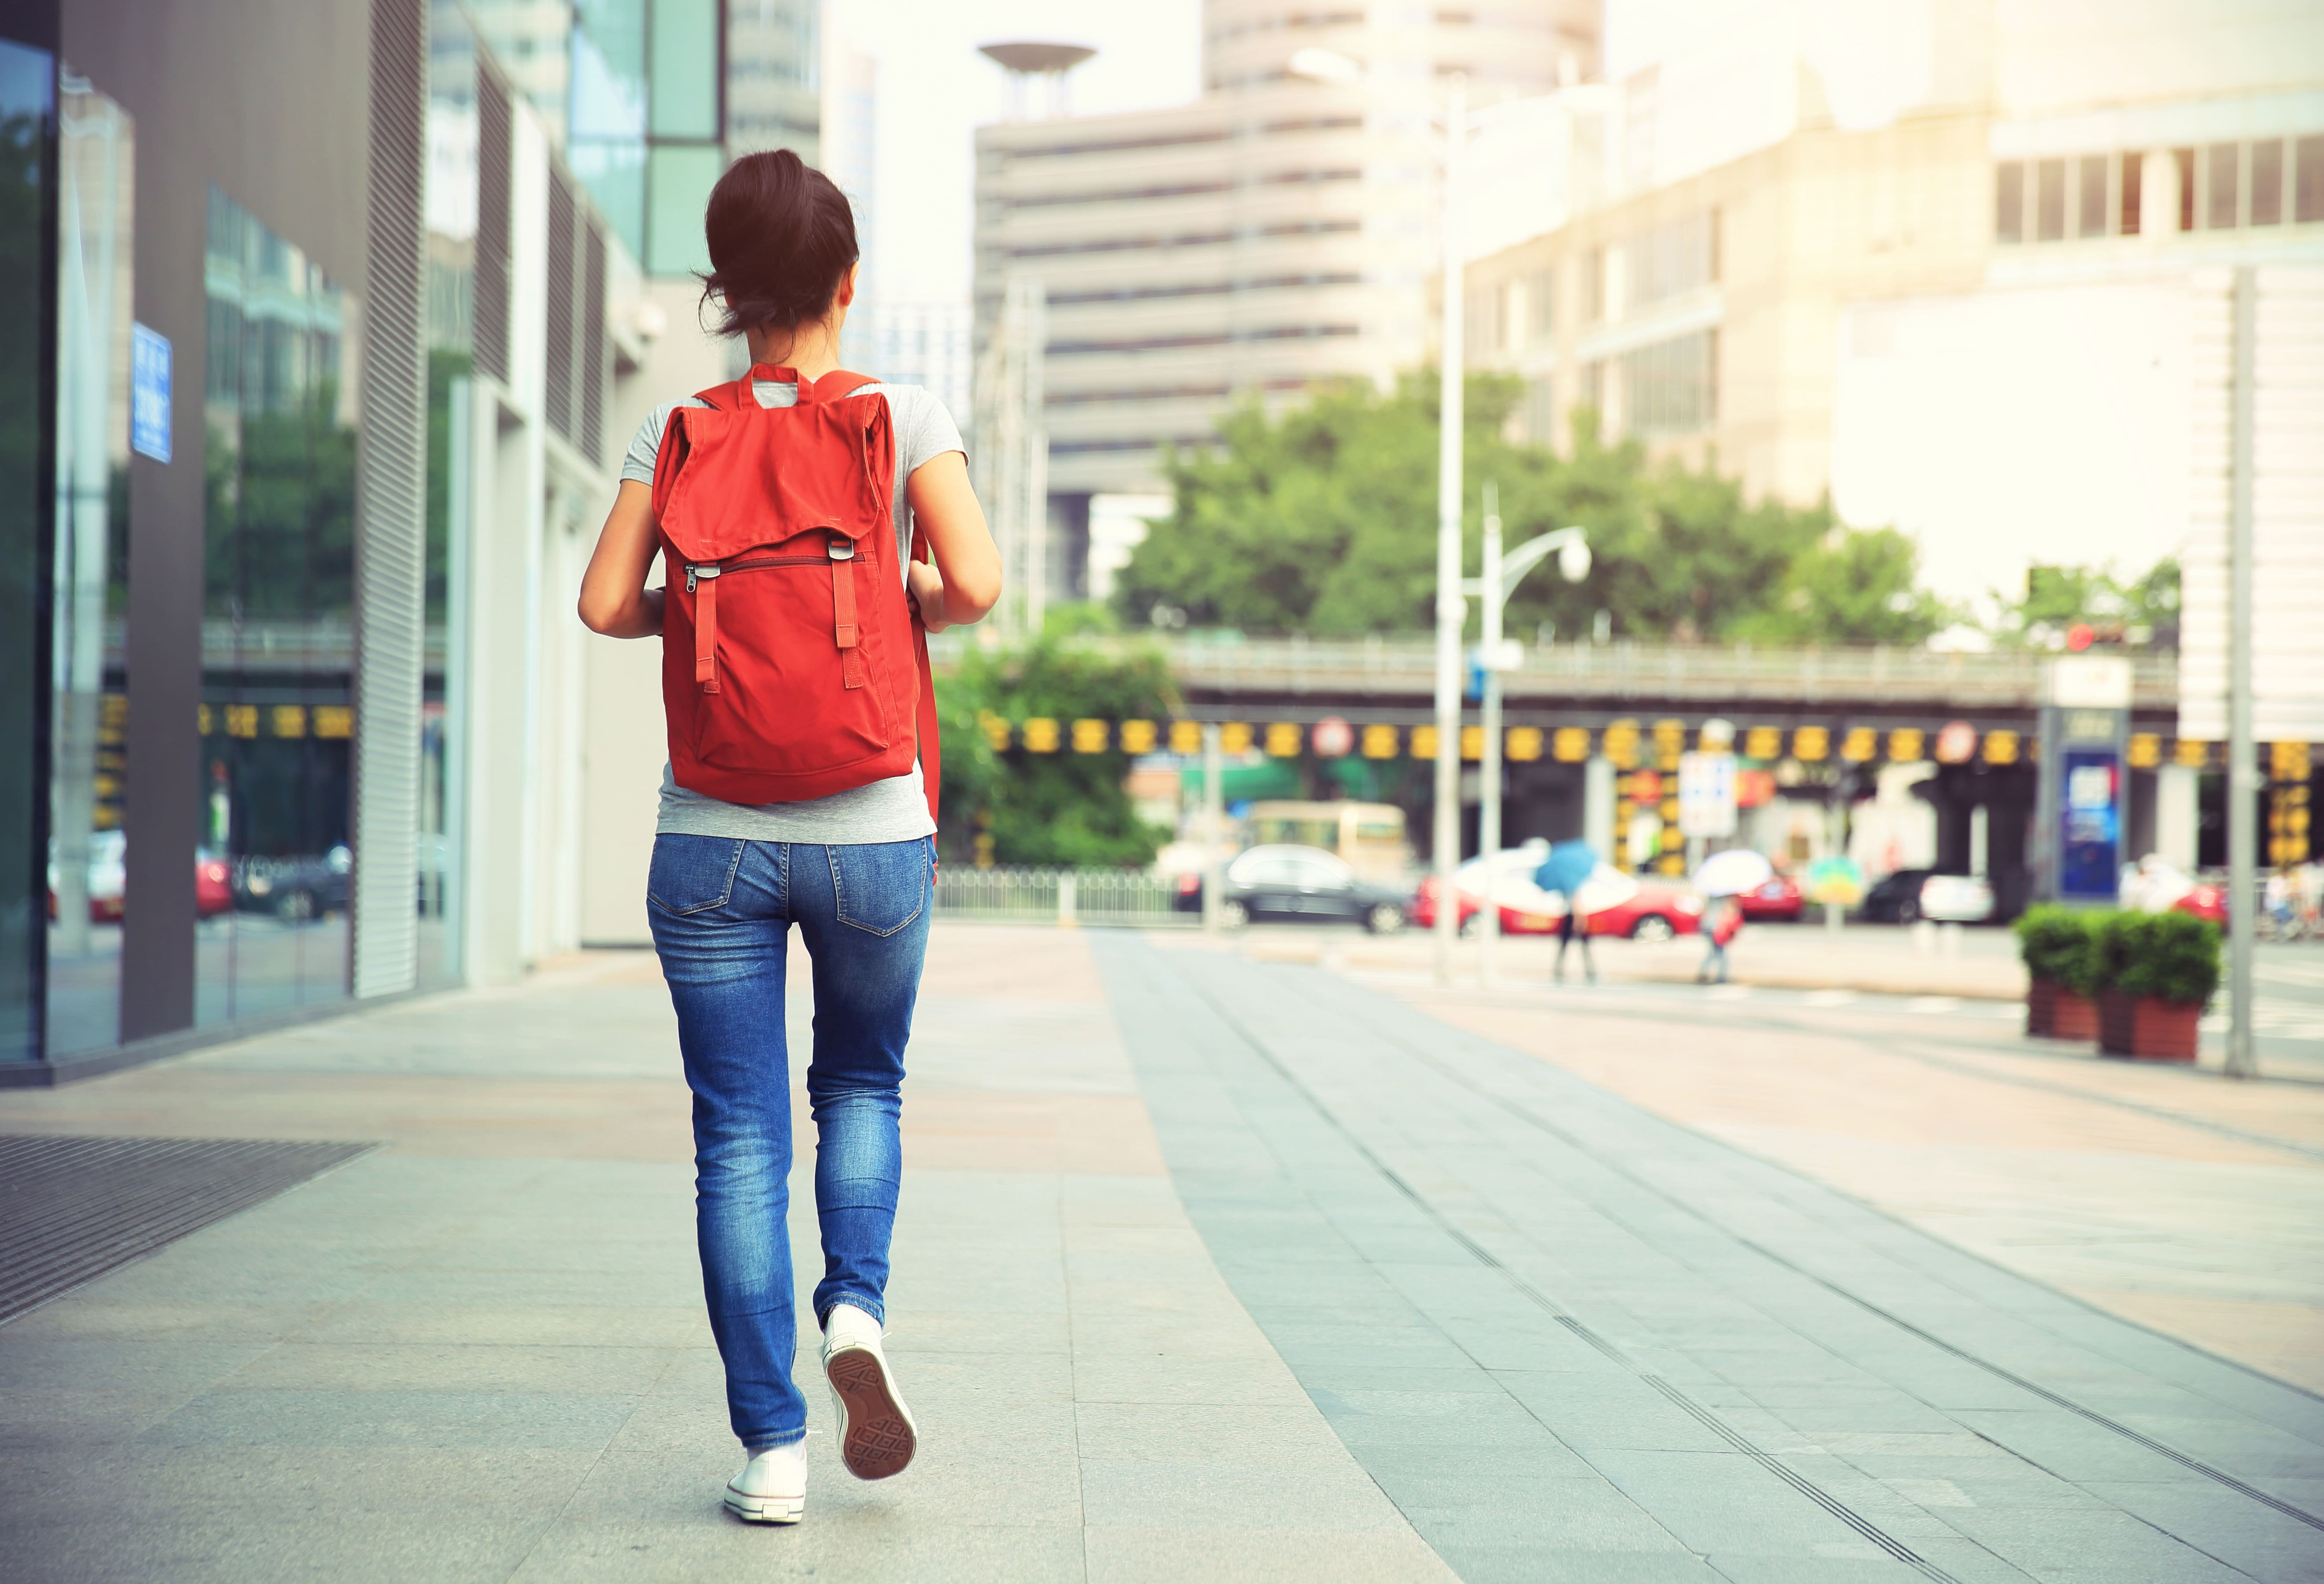 woman-with-rucksack-walking-on-street-PEJXBSD-min.jpg